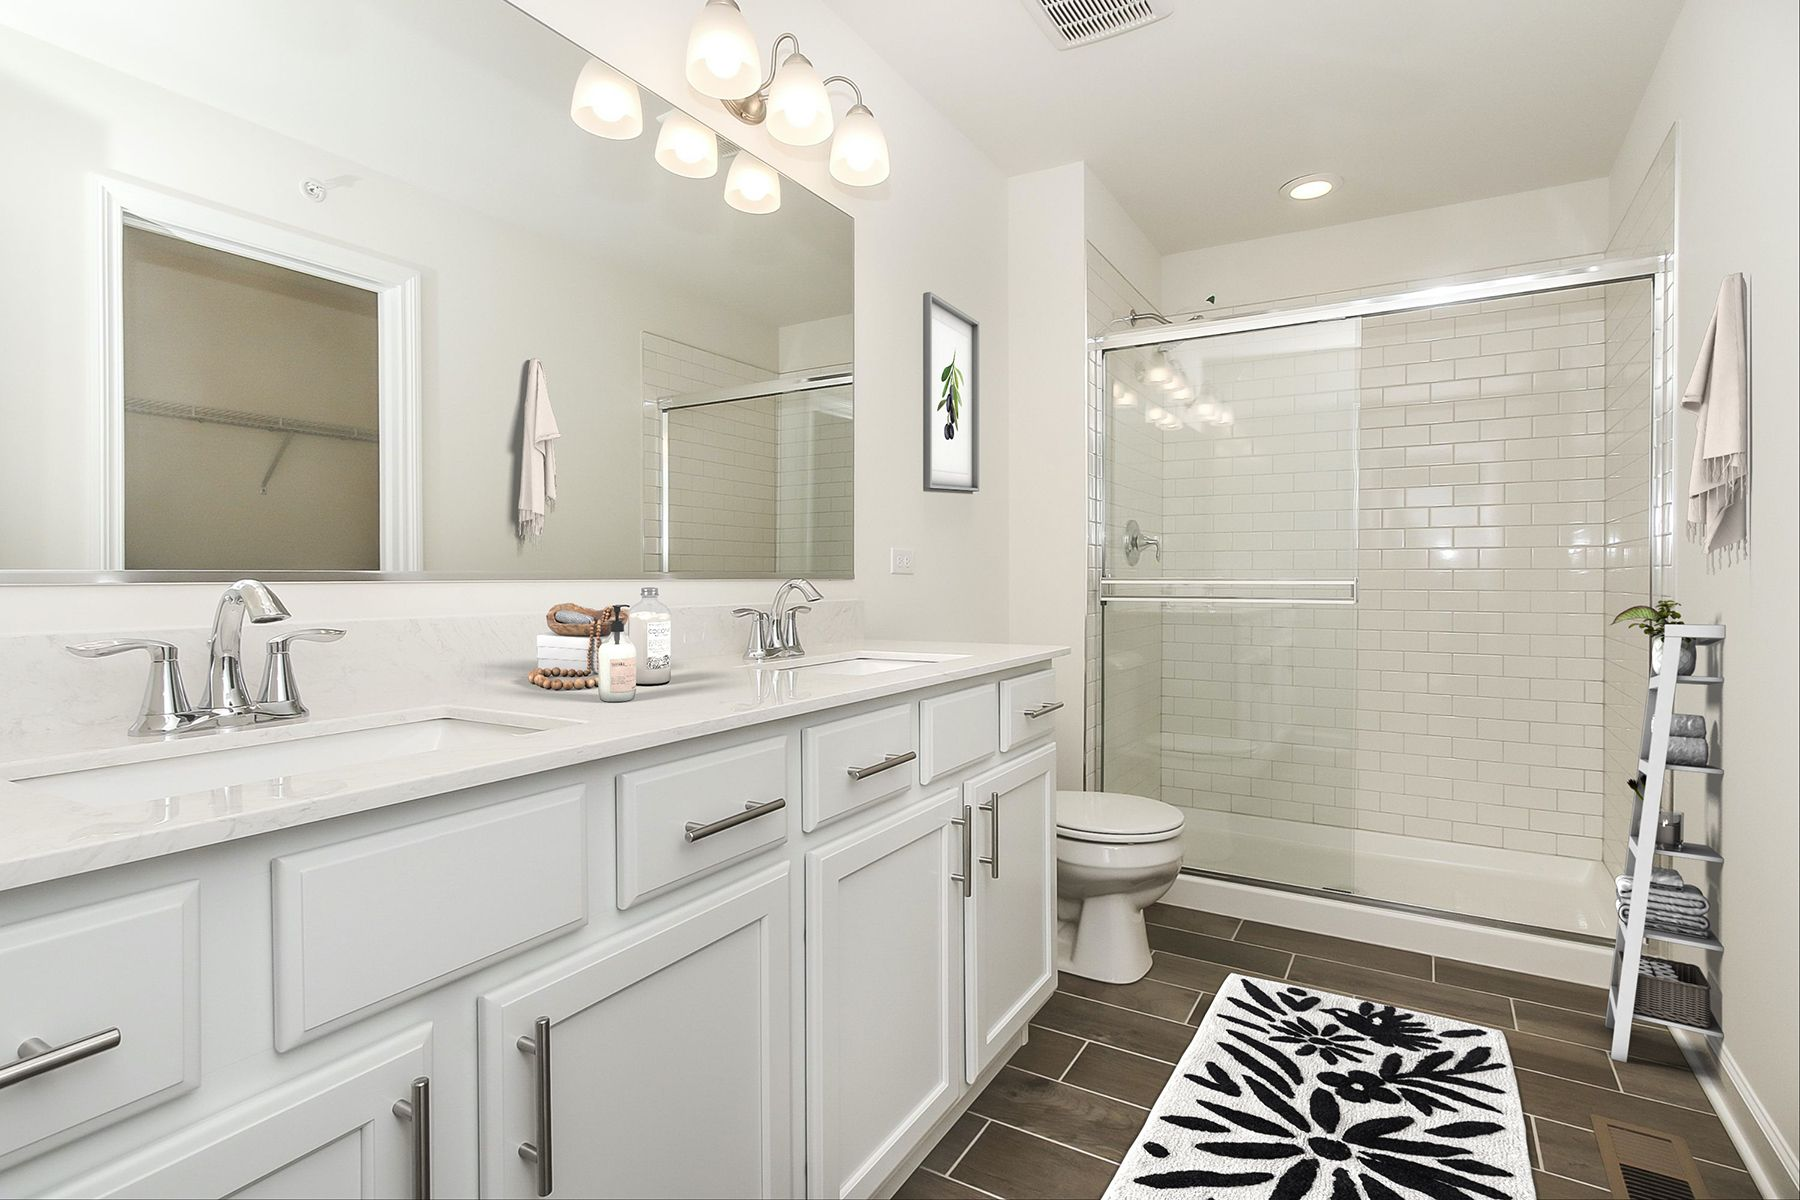 Bathroom featured in the Belmont By M/I Homes in Chicago, IL